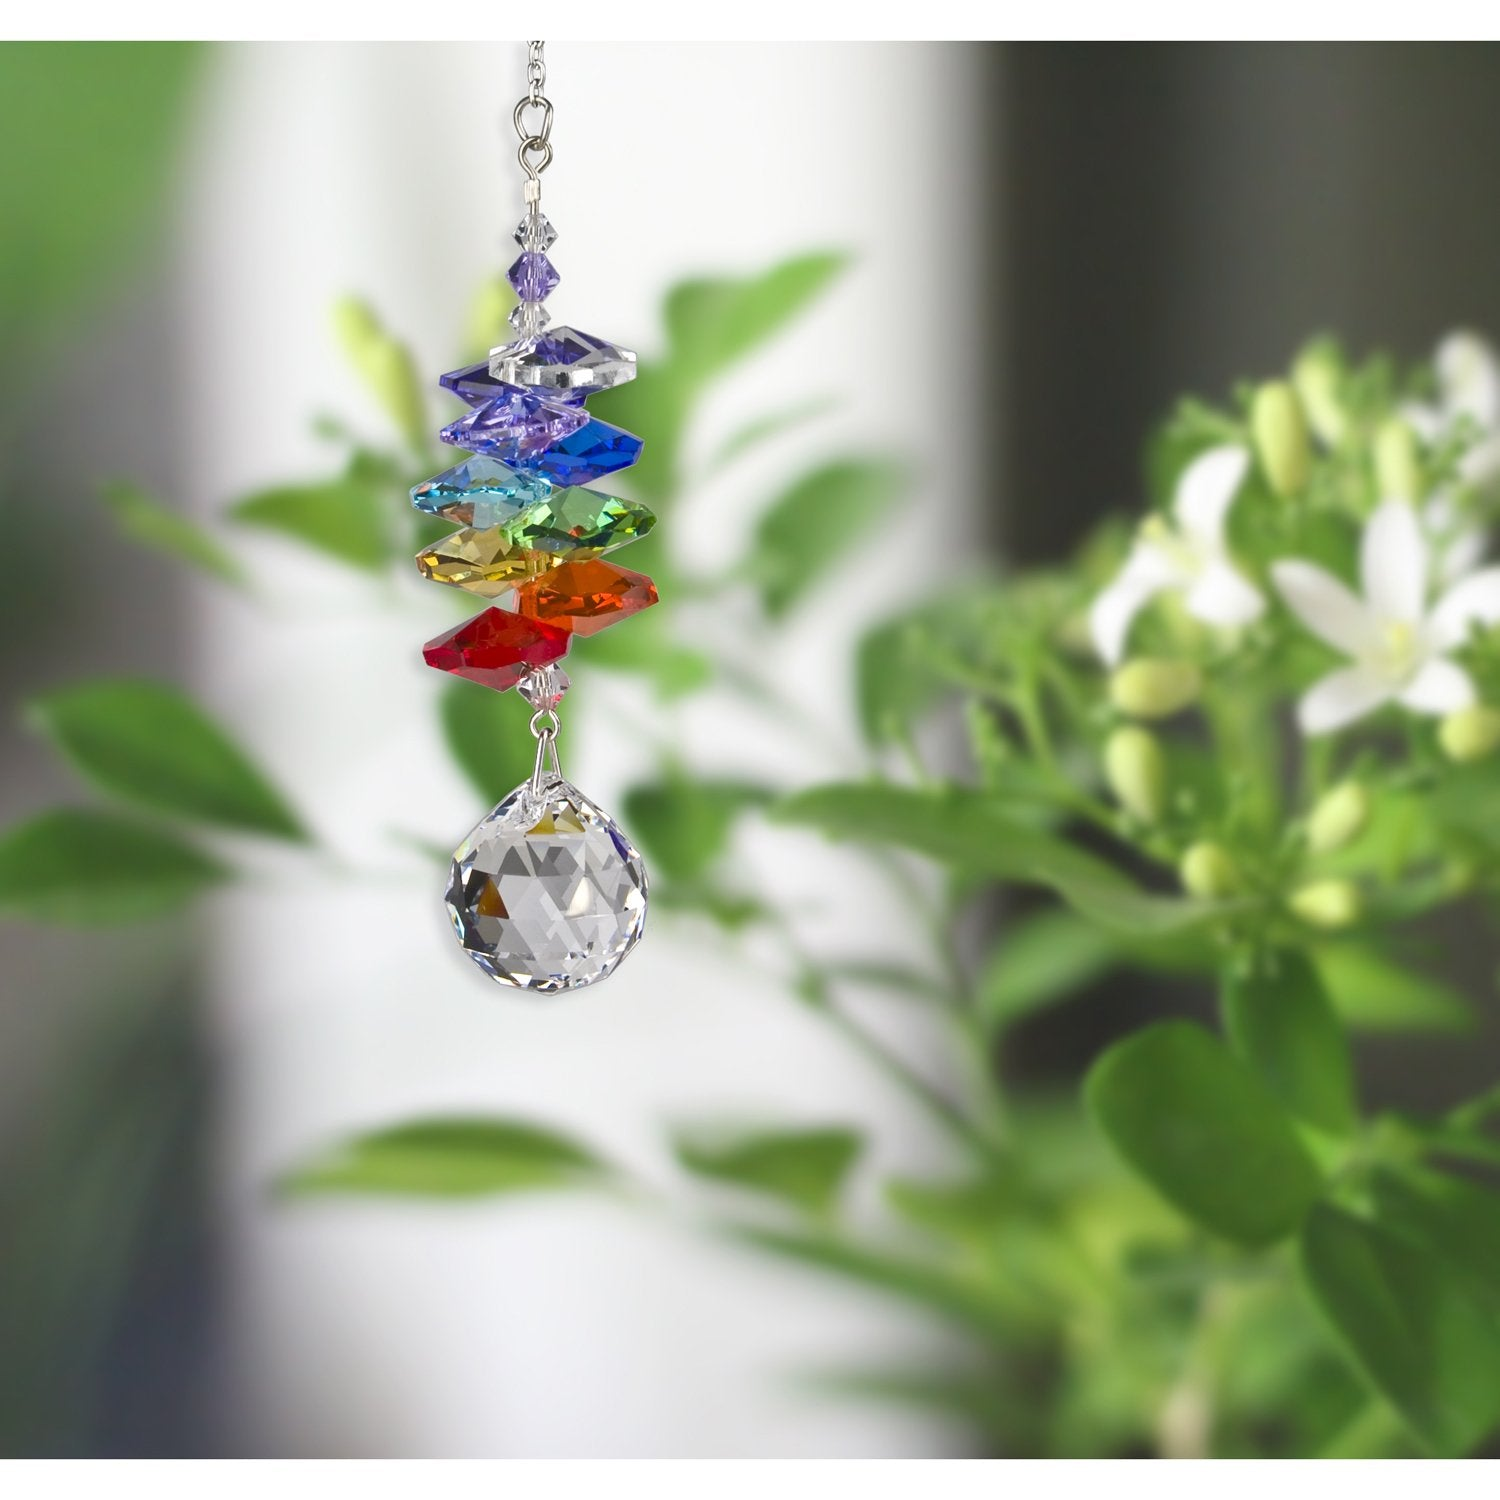 Crystal Rainbow Cascade Suncatcher - Almond alternate lifestyle image